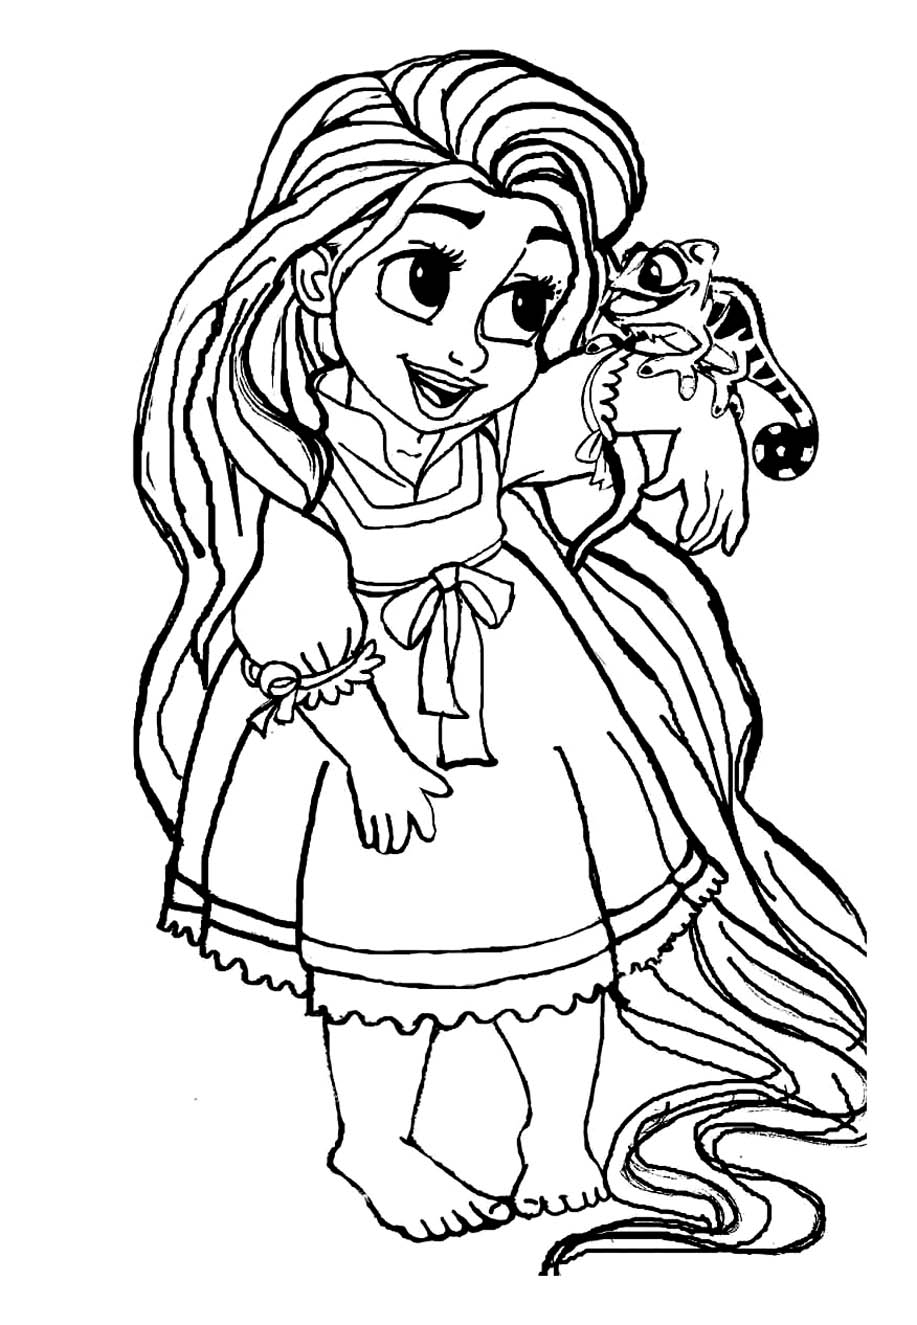 Tangled To Print For Free Tangled Kids Coloring Pages